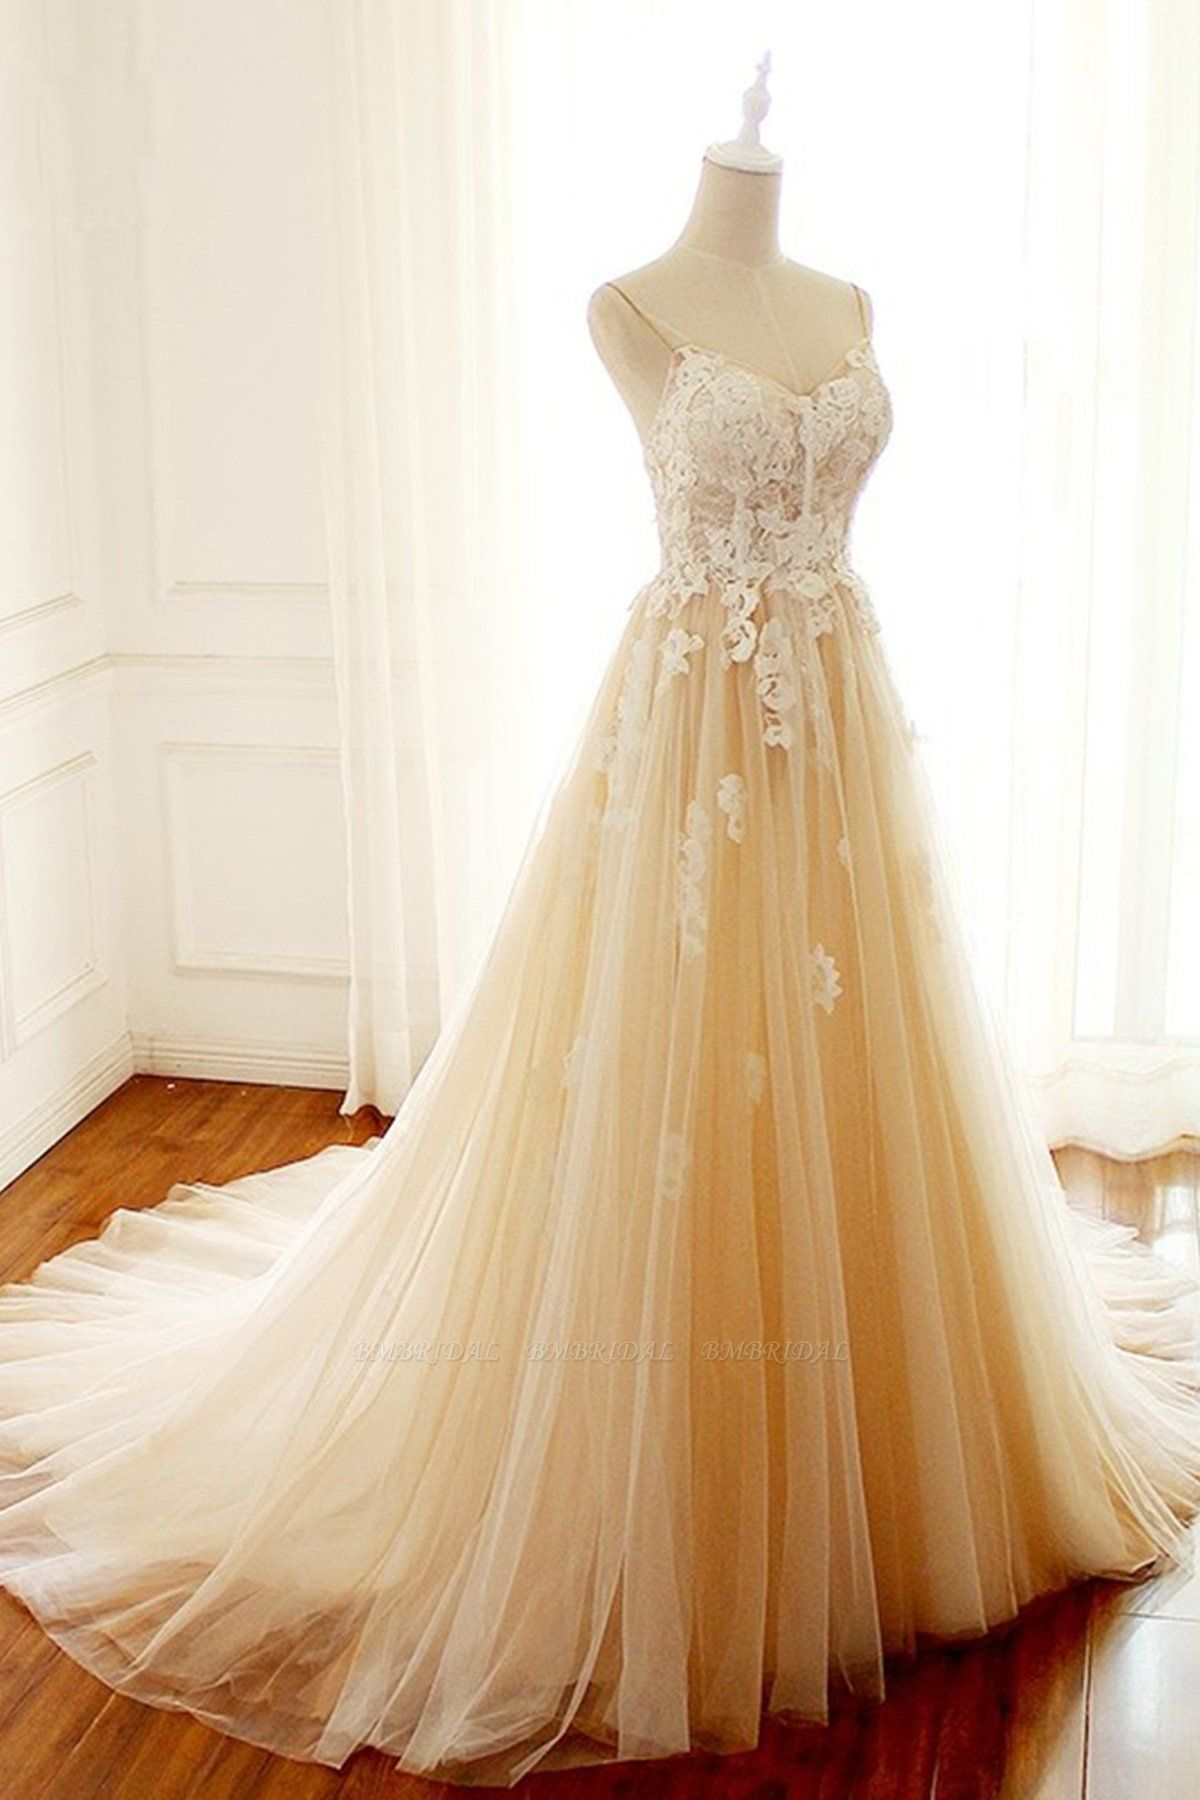 BMbridal Gorgeous Sweetheart Creamy Tulle Wedding Dress Spaghetti Straps Sweep Train Bridal Gowns On Sale